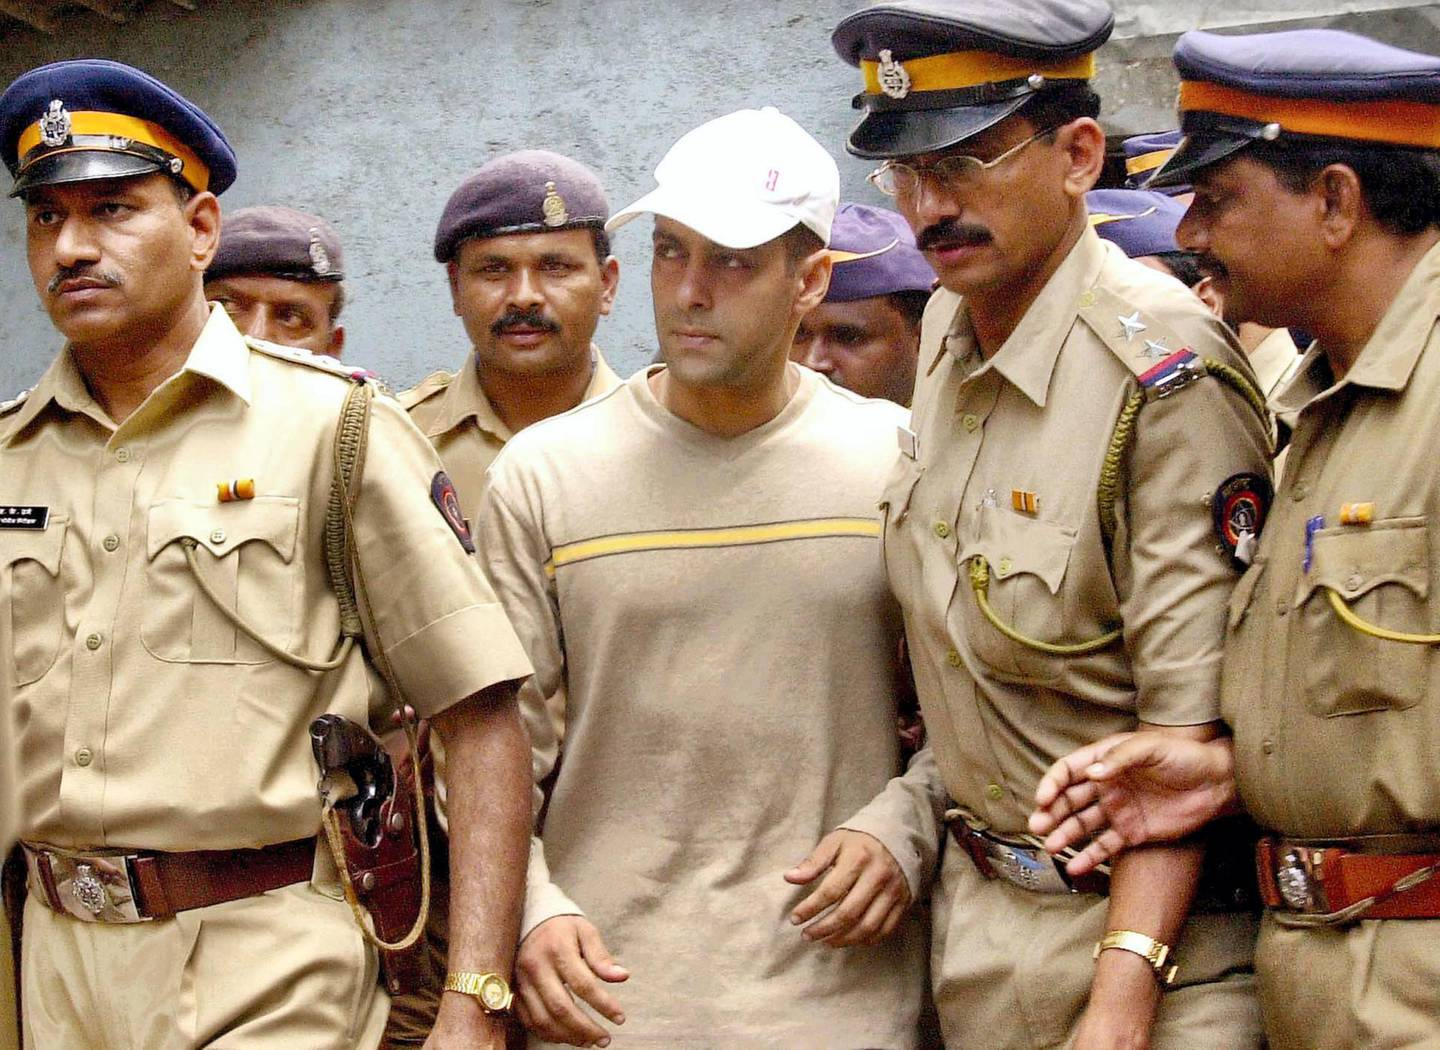 Bombay police officials escort Bollywood star Salman Khan (C) to court in Bombay 21 October 2002. Khan, who is currently in custody for alleged drunk driving leading to the death of a homeless man, was remanded for further custody by the court until 31 October. AFP PHOTO/Sebastian D'SOUZA (Photo by SEBASTIAN D'SOUZA / AFP)